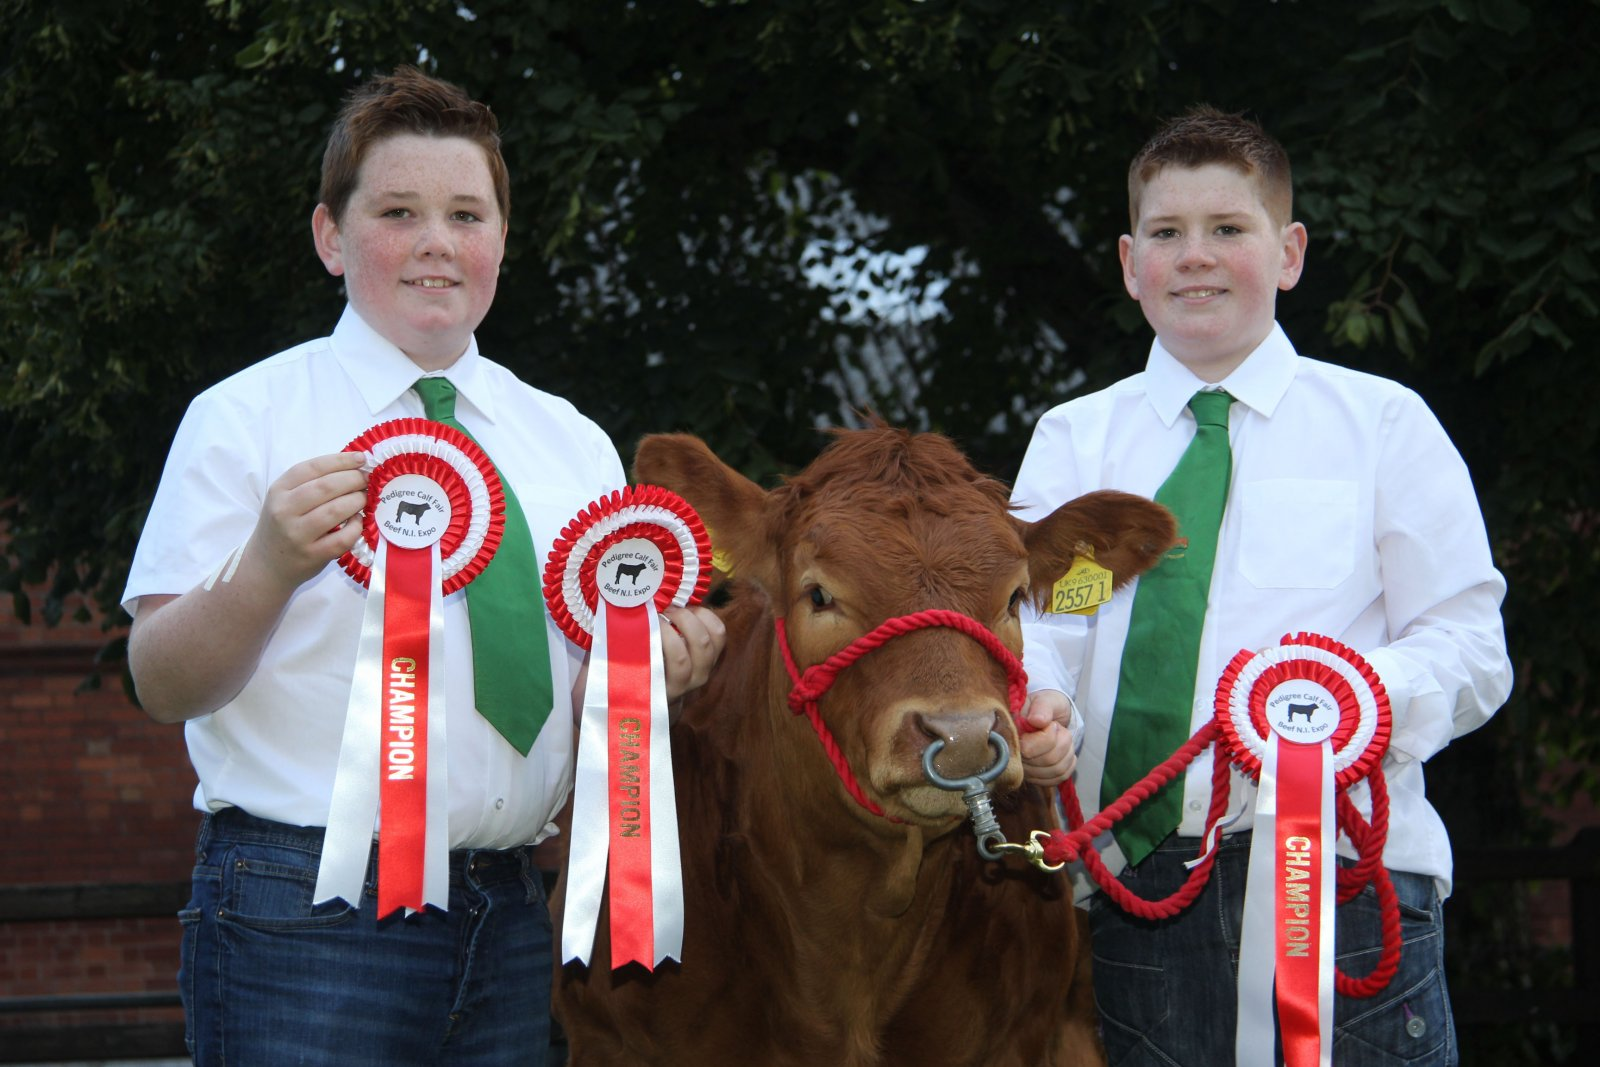 Looking forward to the Pedigree Calf Fair @ Beef NI Expo are Michael and Jack Loughran, Cookstown, with their Limousin calf Millgate Lucy.